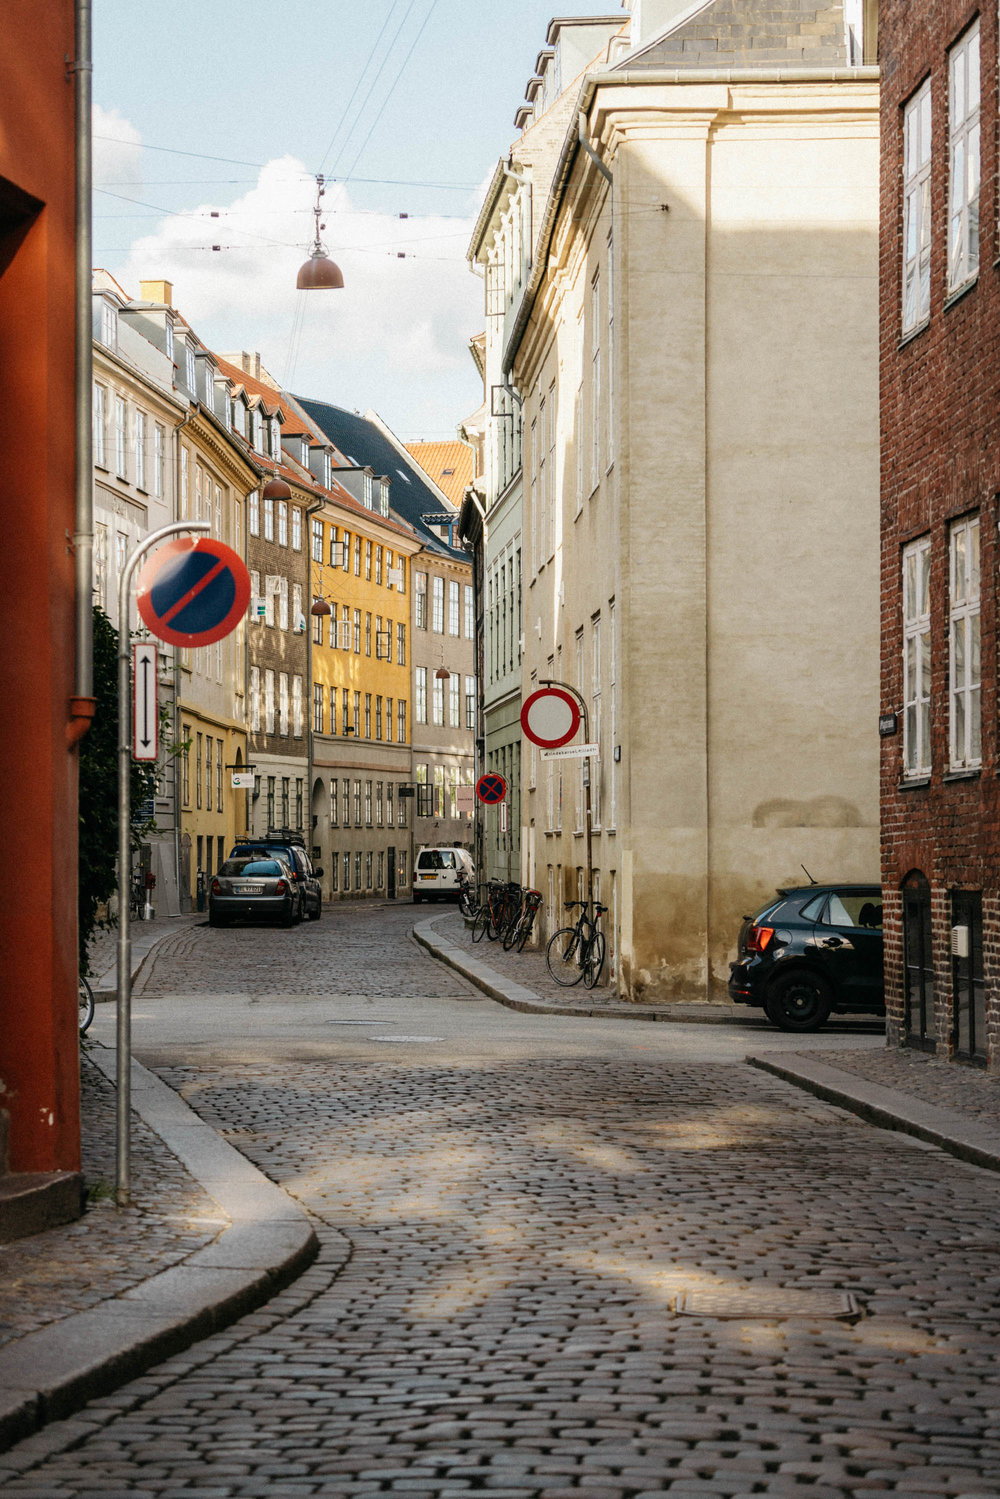 Magstræde and Strøget, the oldest streets in Copenhagen